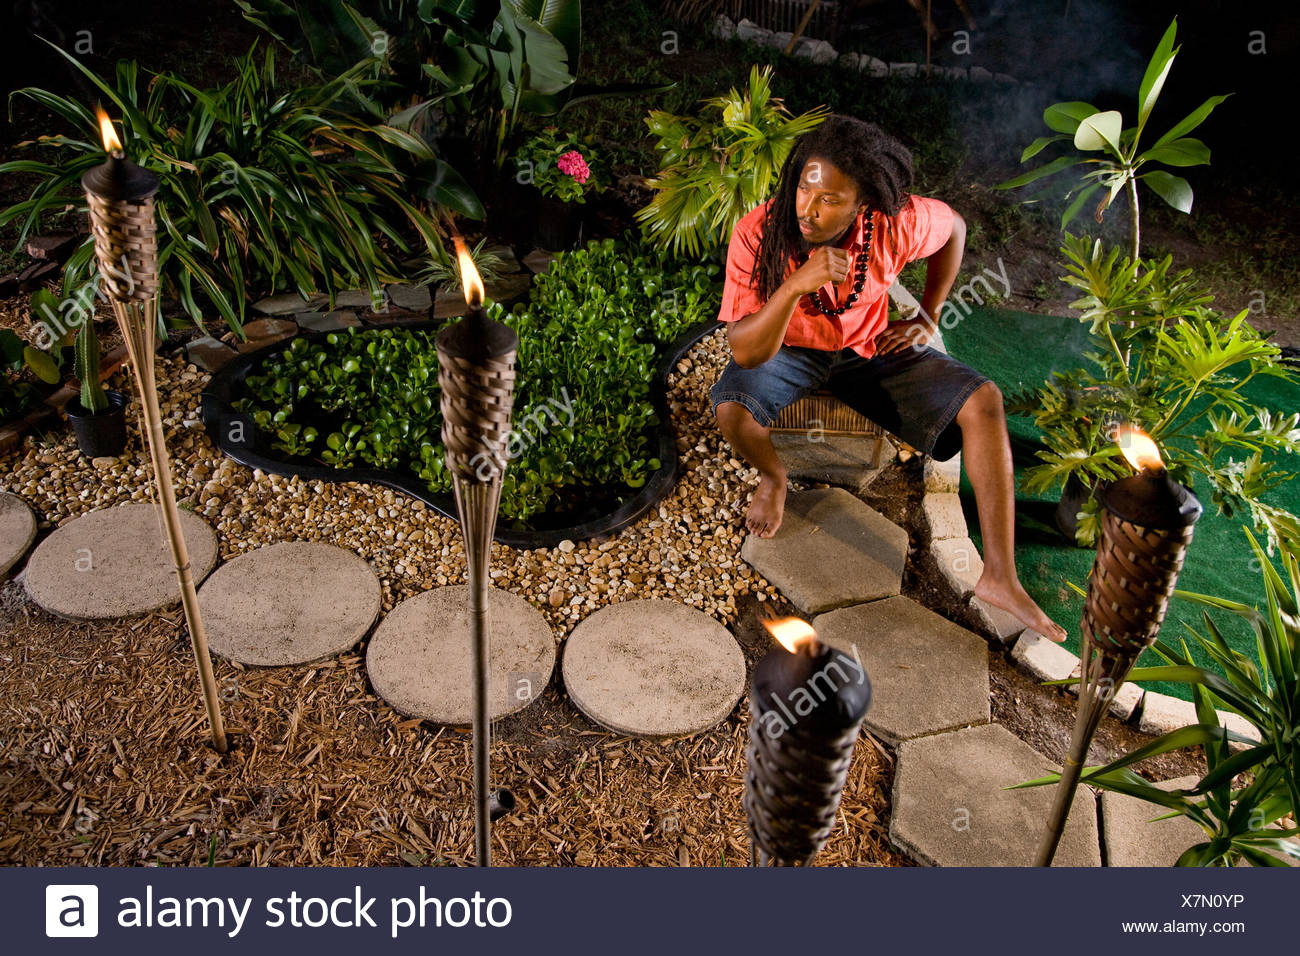 Young Jamaican man with dreadlocks sitting in tropical garden - Stock Image